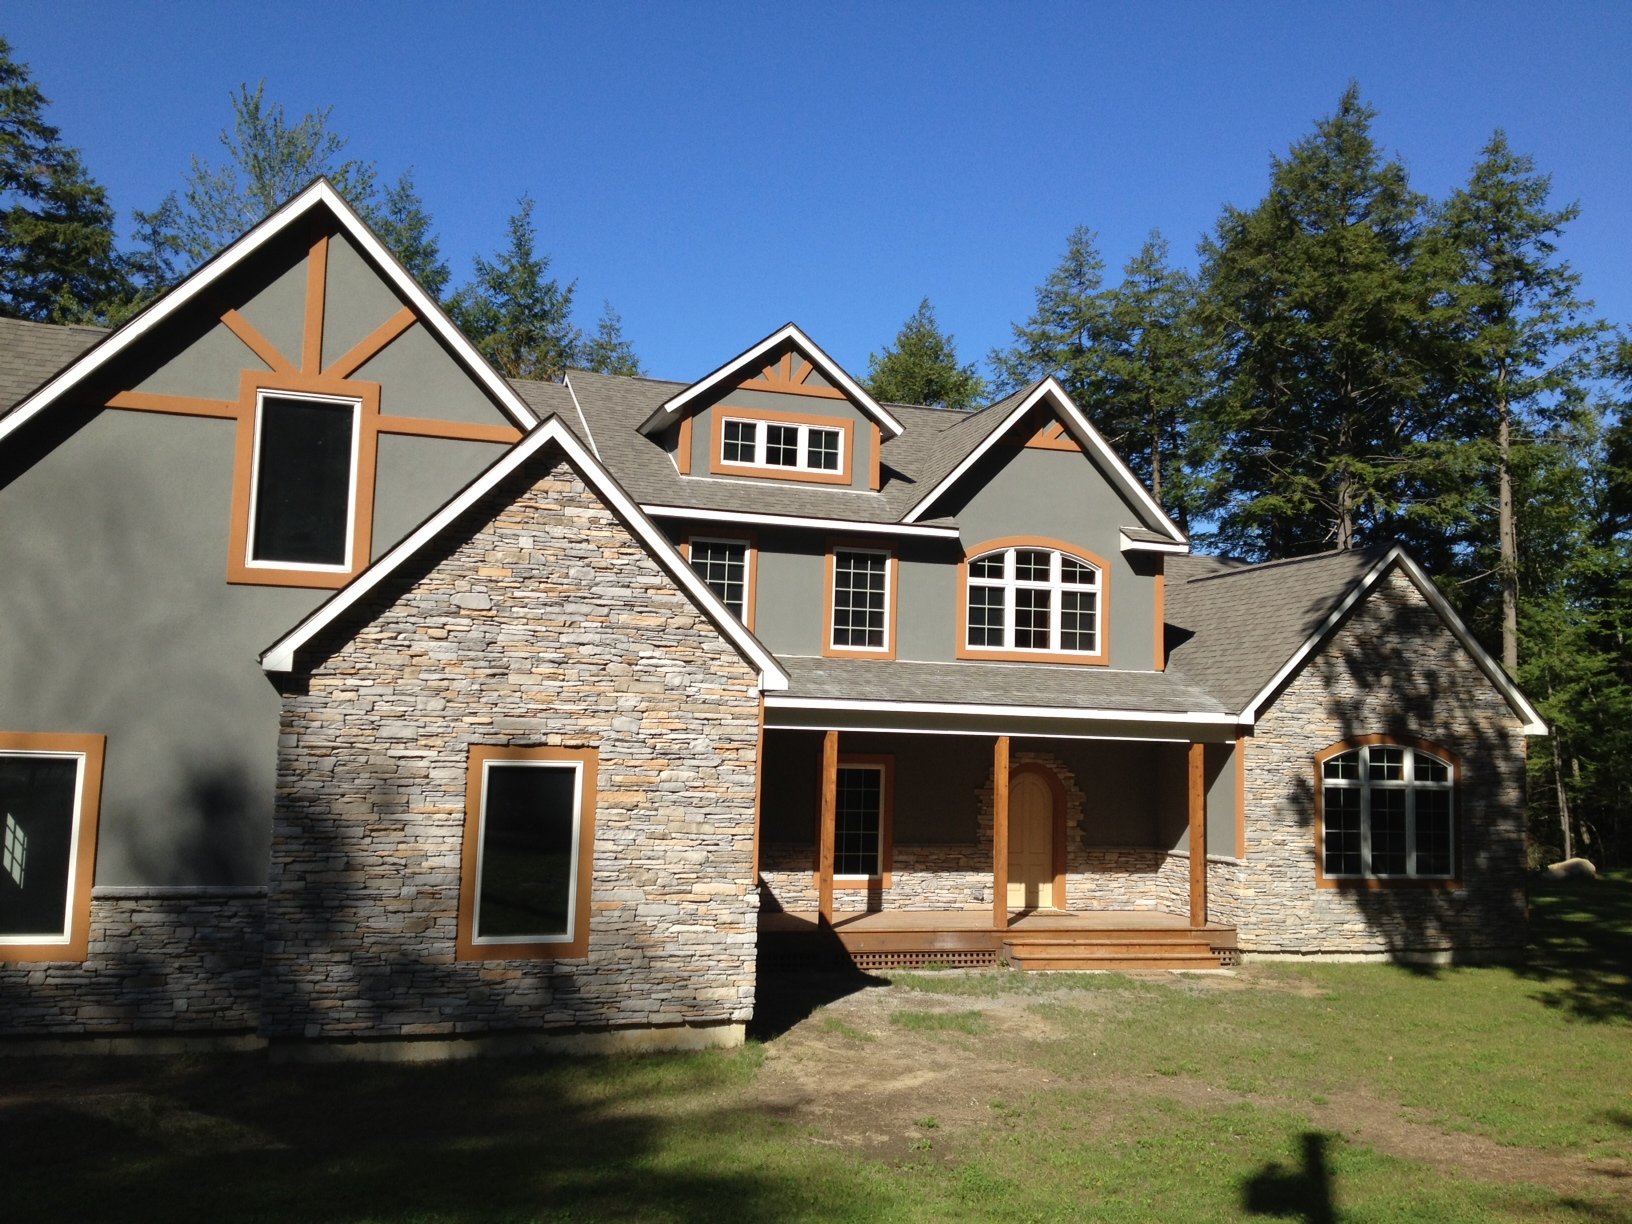 Custom modular homes saratoga construction llc for Custom built home plans